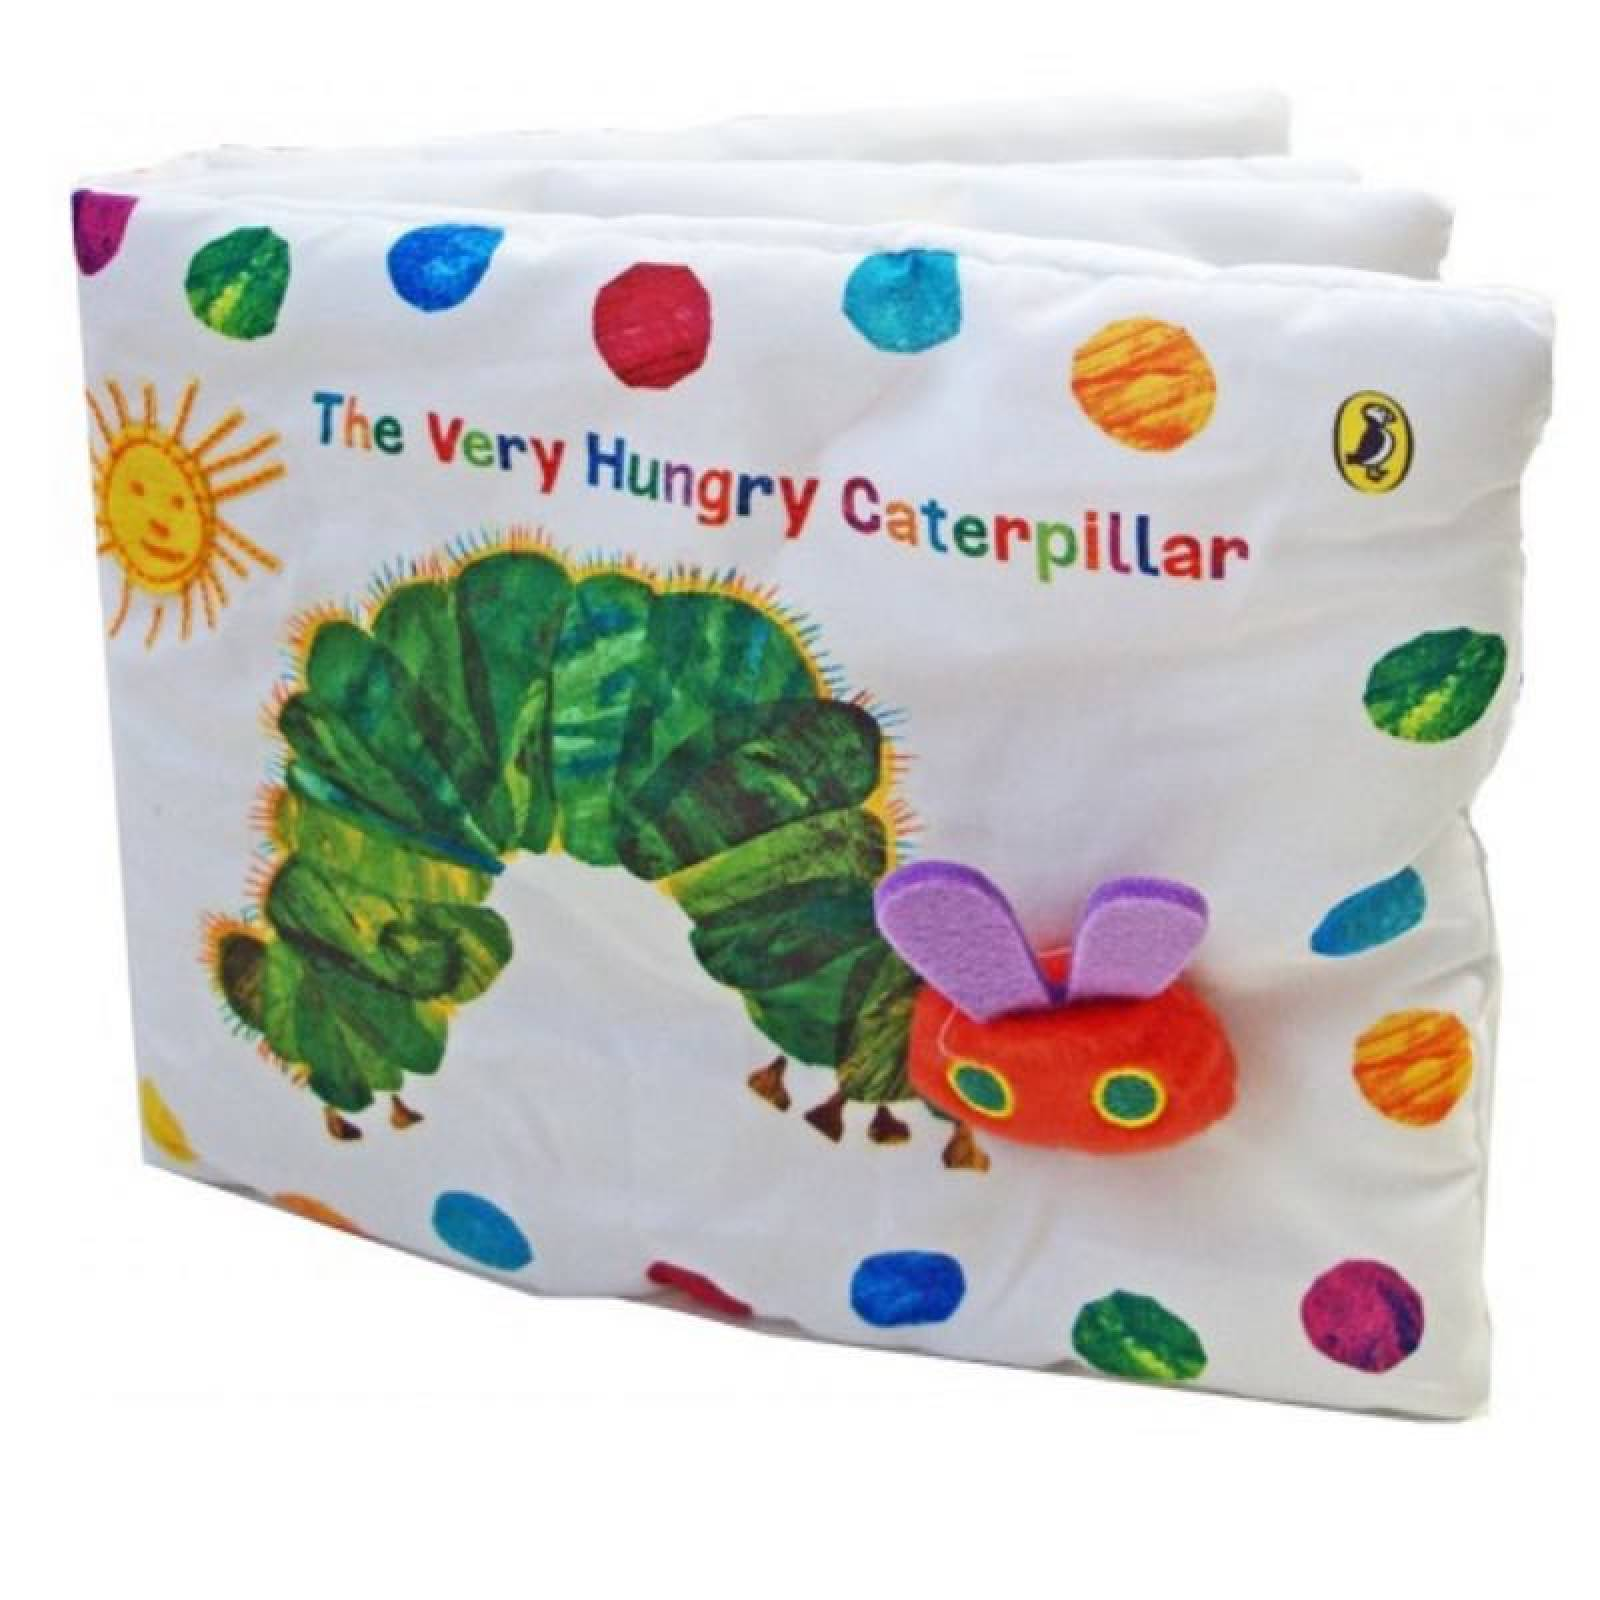 The Very Hungry Caterpillar Cloth Book thumbnails